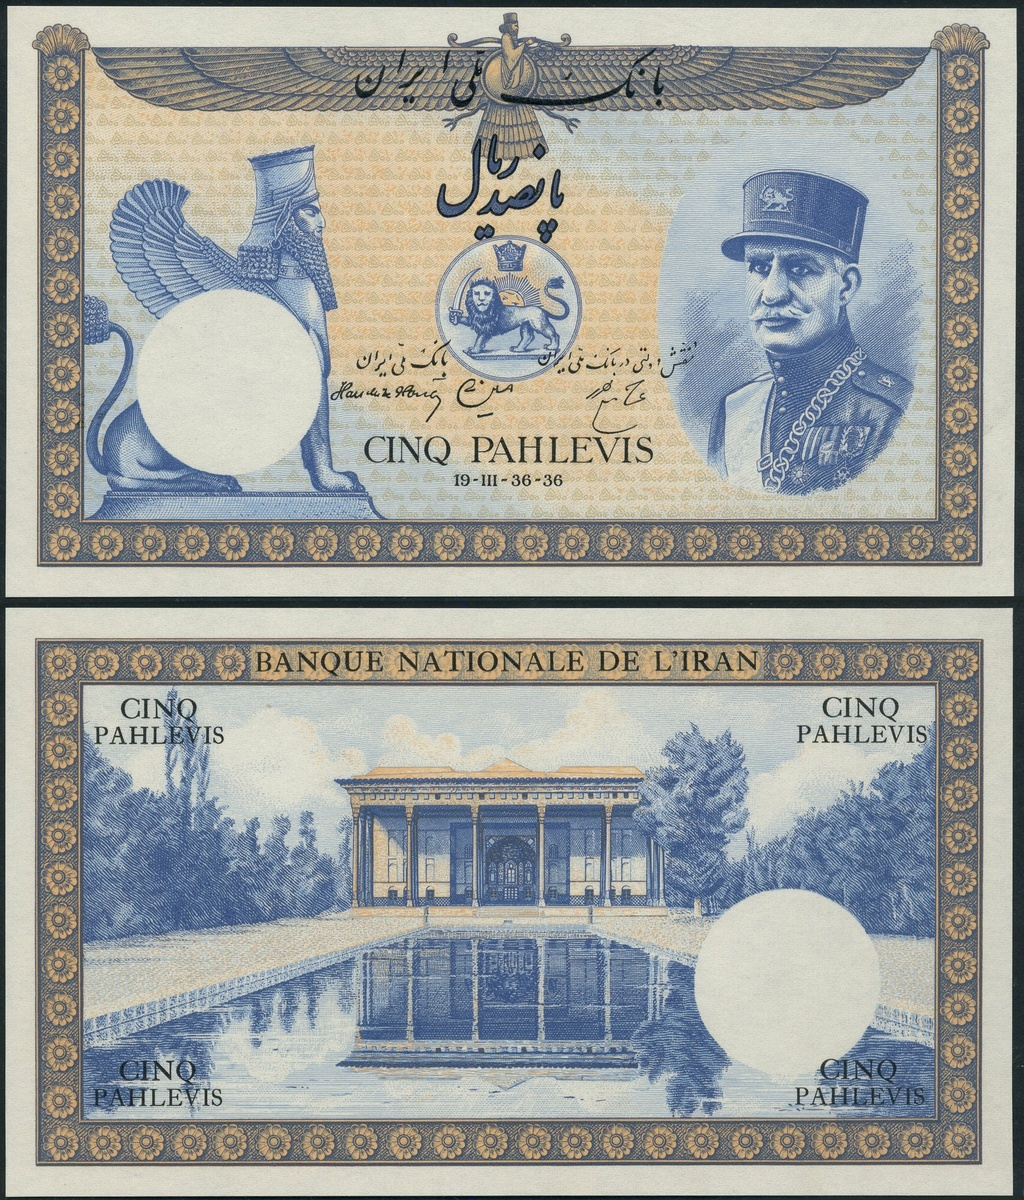 Banque Nationale de l'Iran design for 5 pahlevis. Images courtesy Spink Auctions